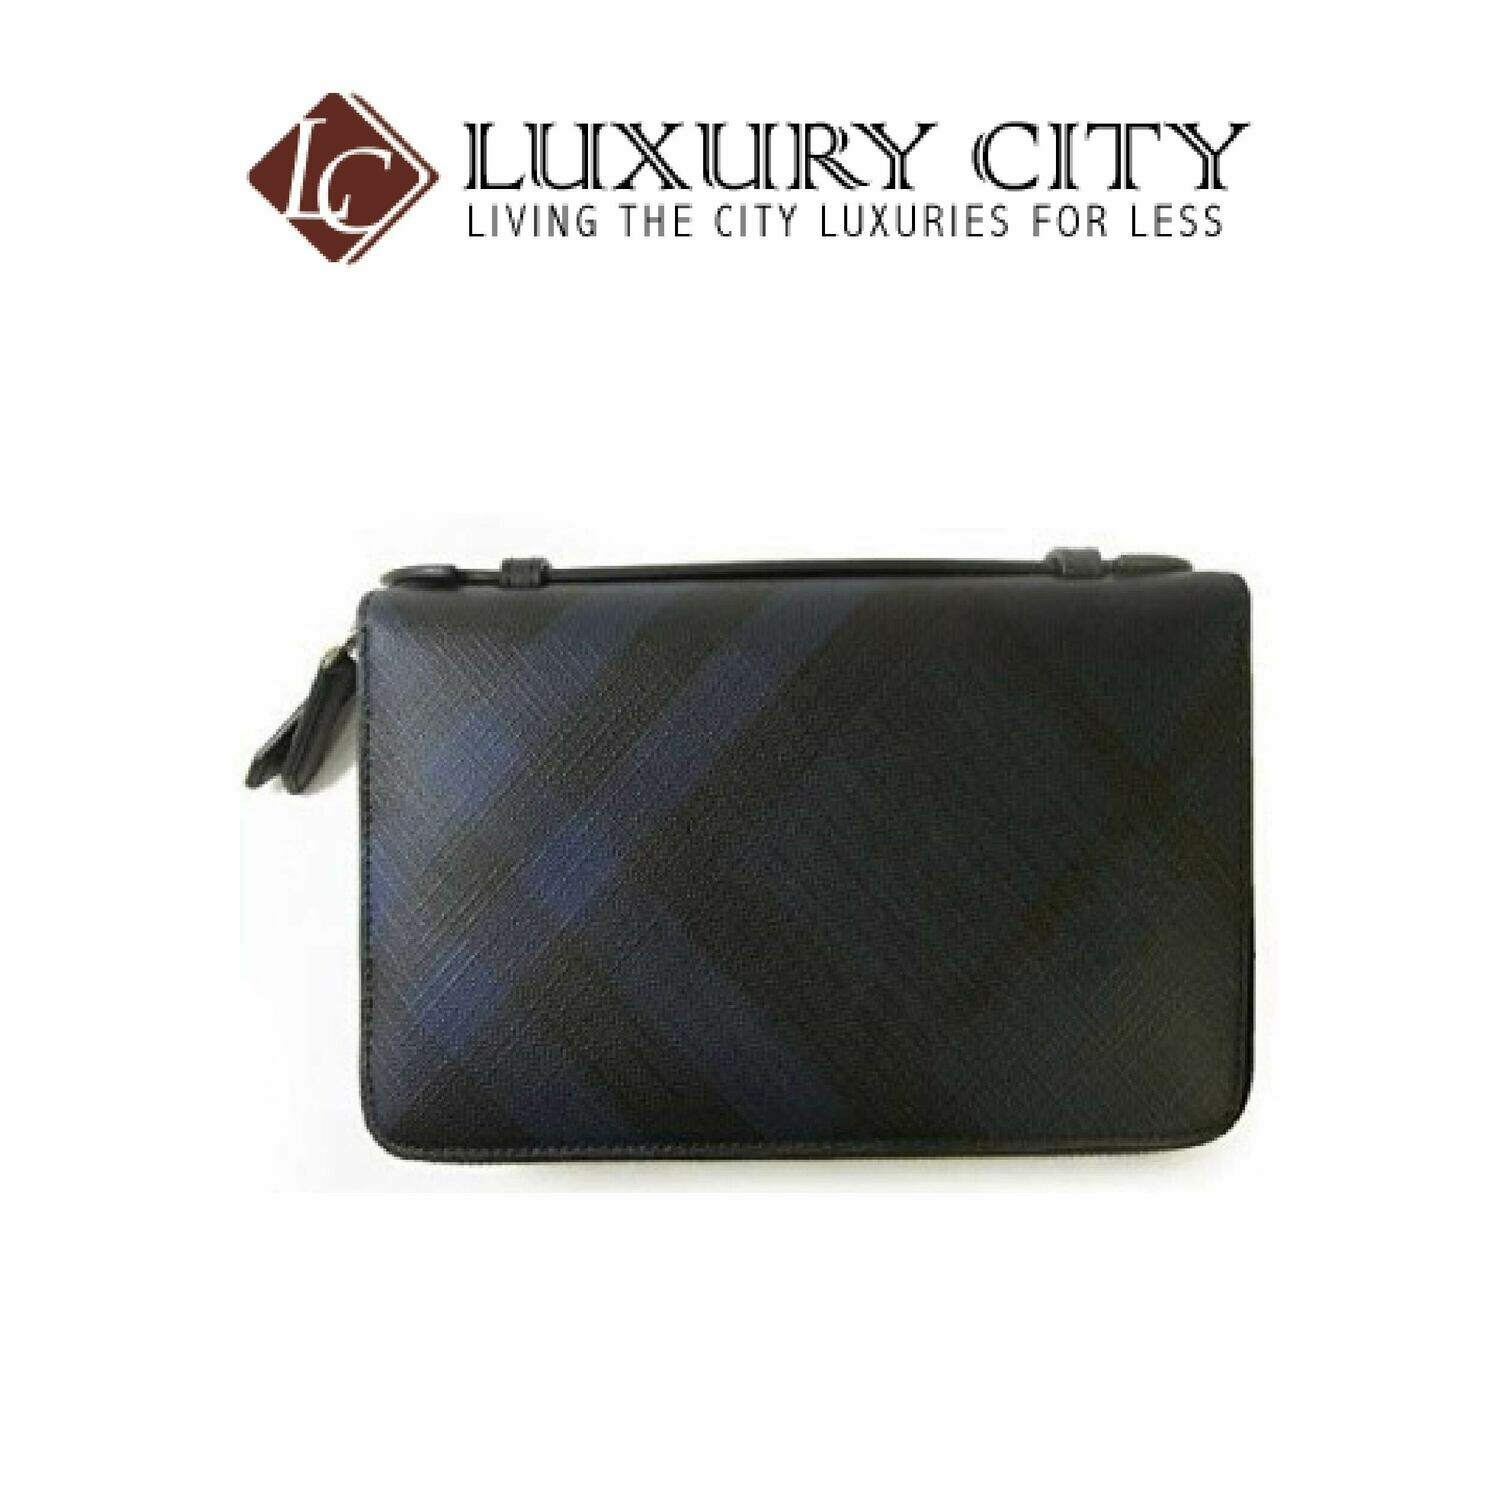 [Luxury City] Burberry Reeves Travel Wallet